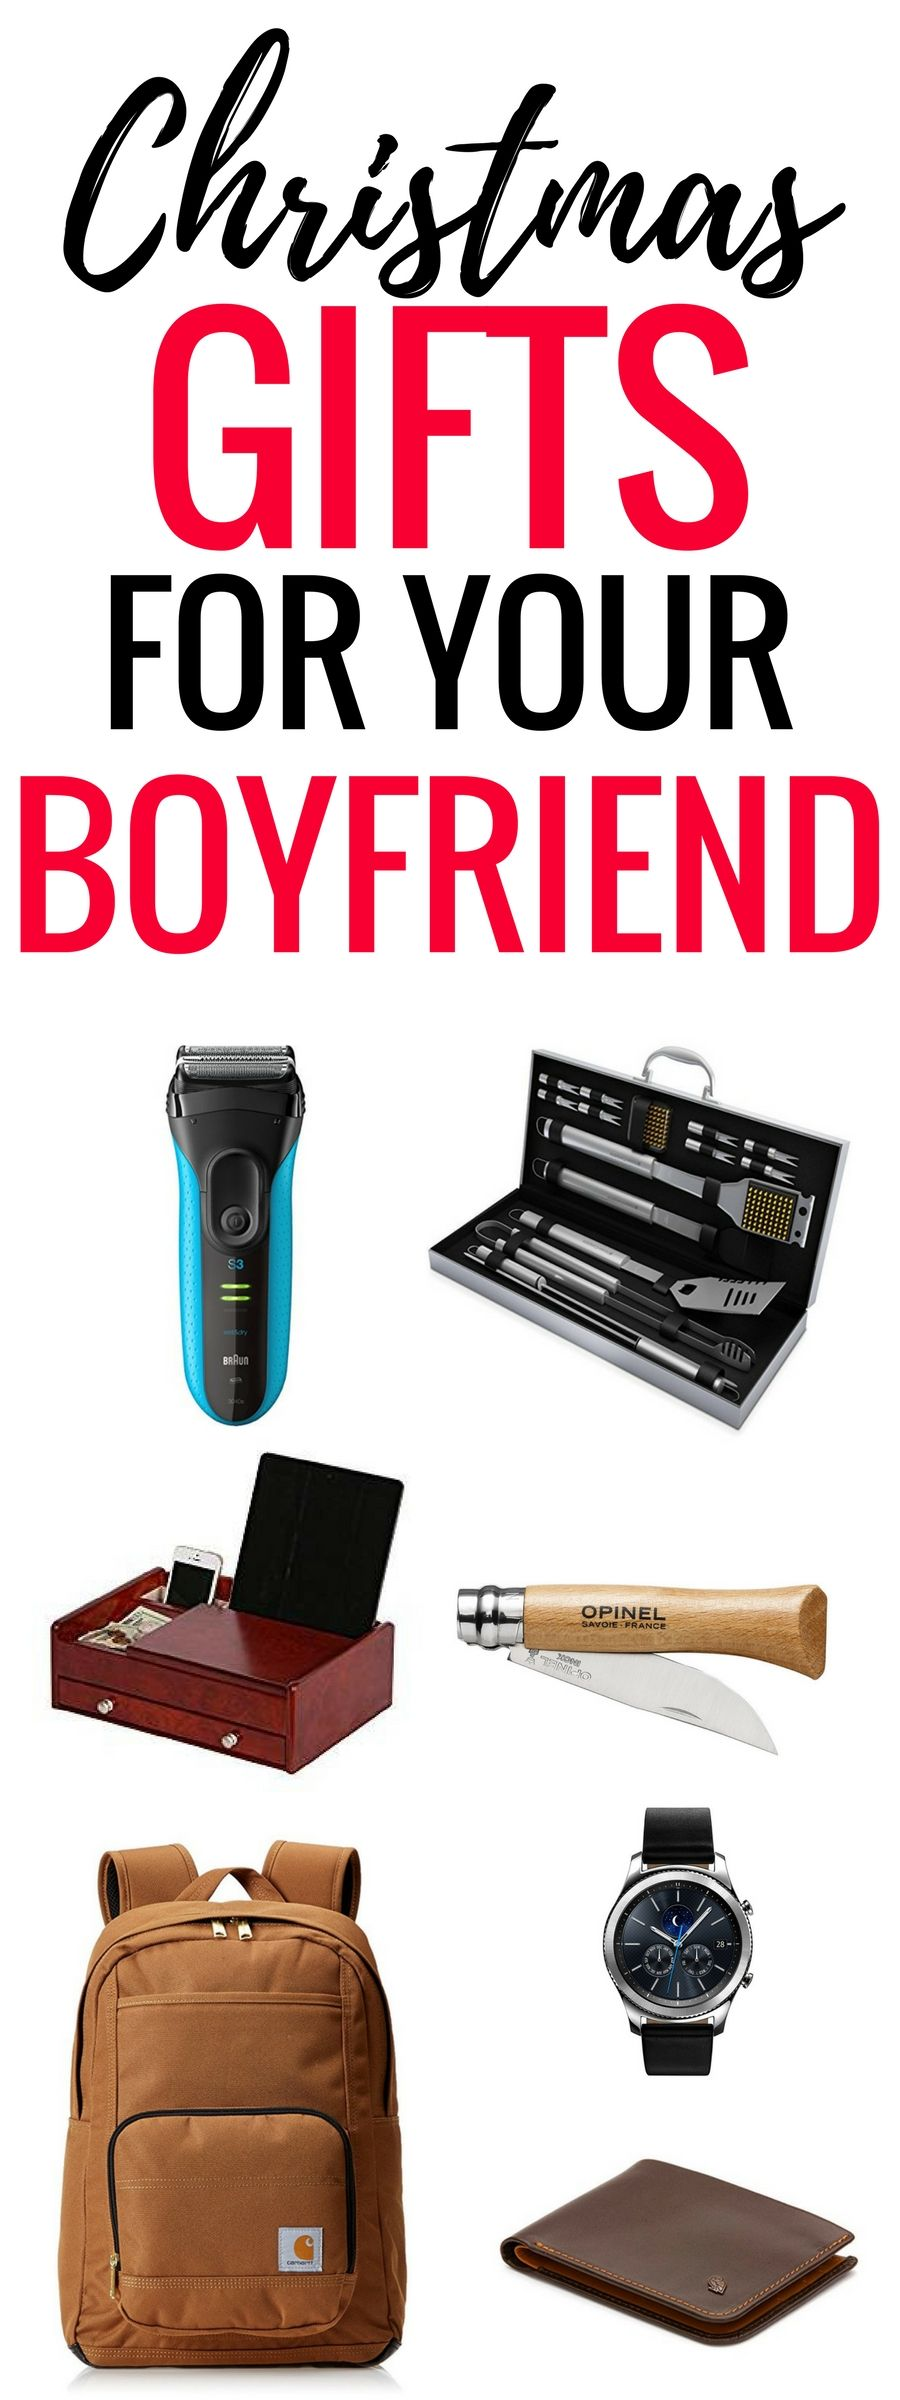 top 10 christmas gifts for couples